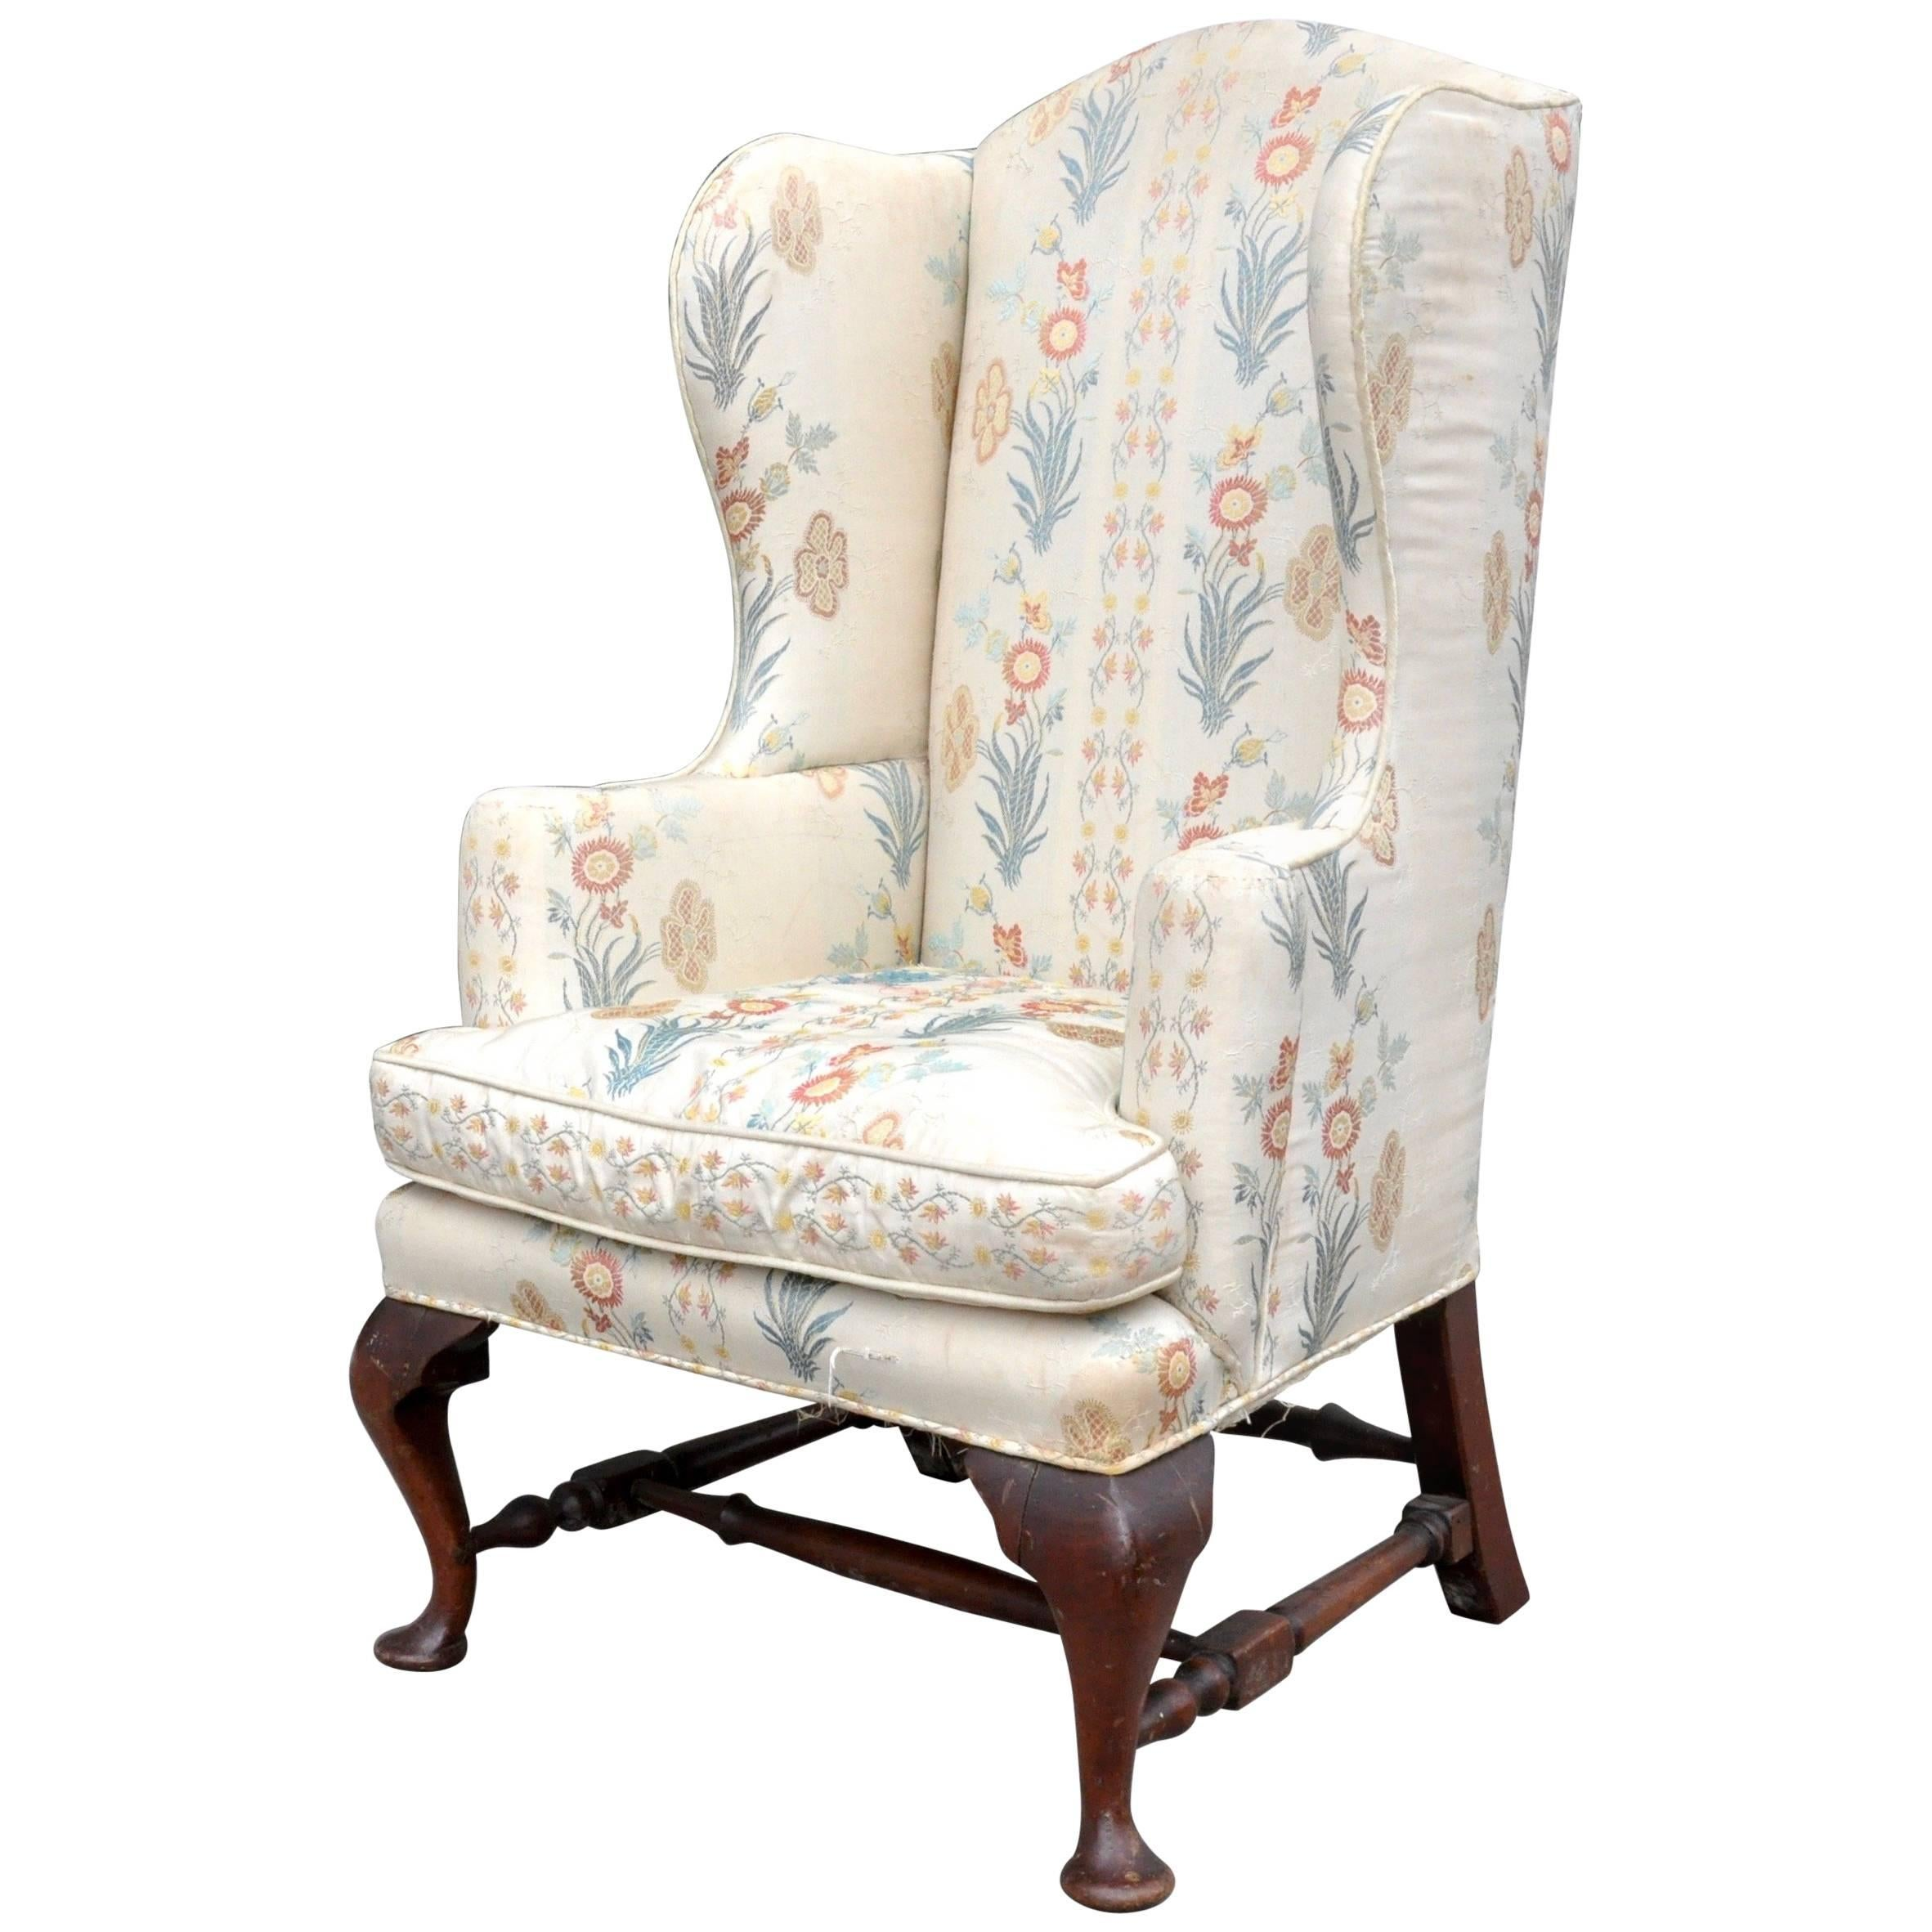 19th century diminutive or childu0027s walnut wingback chair american